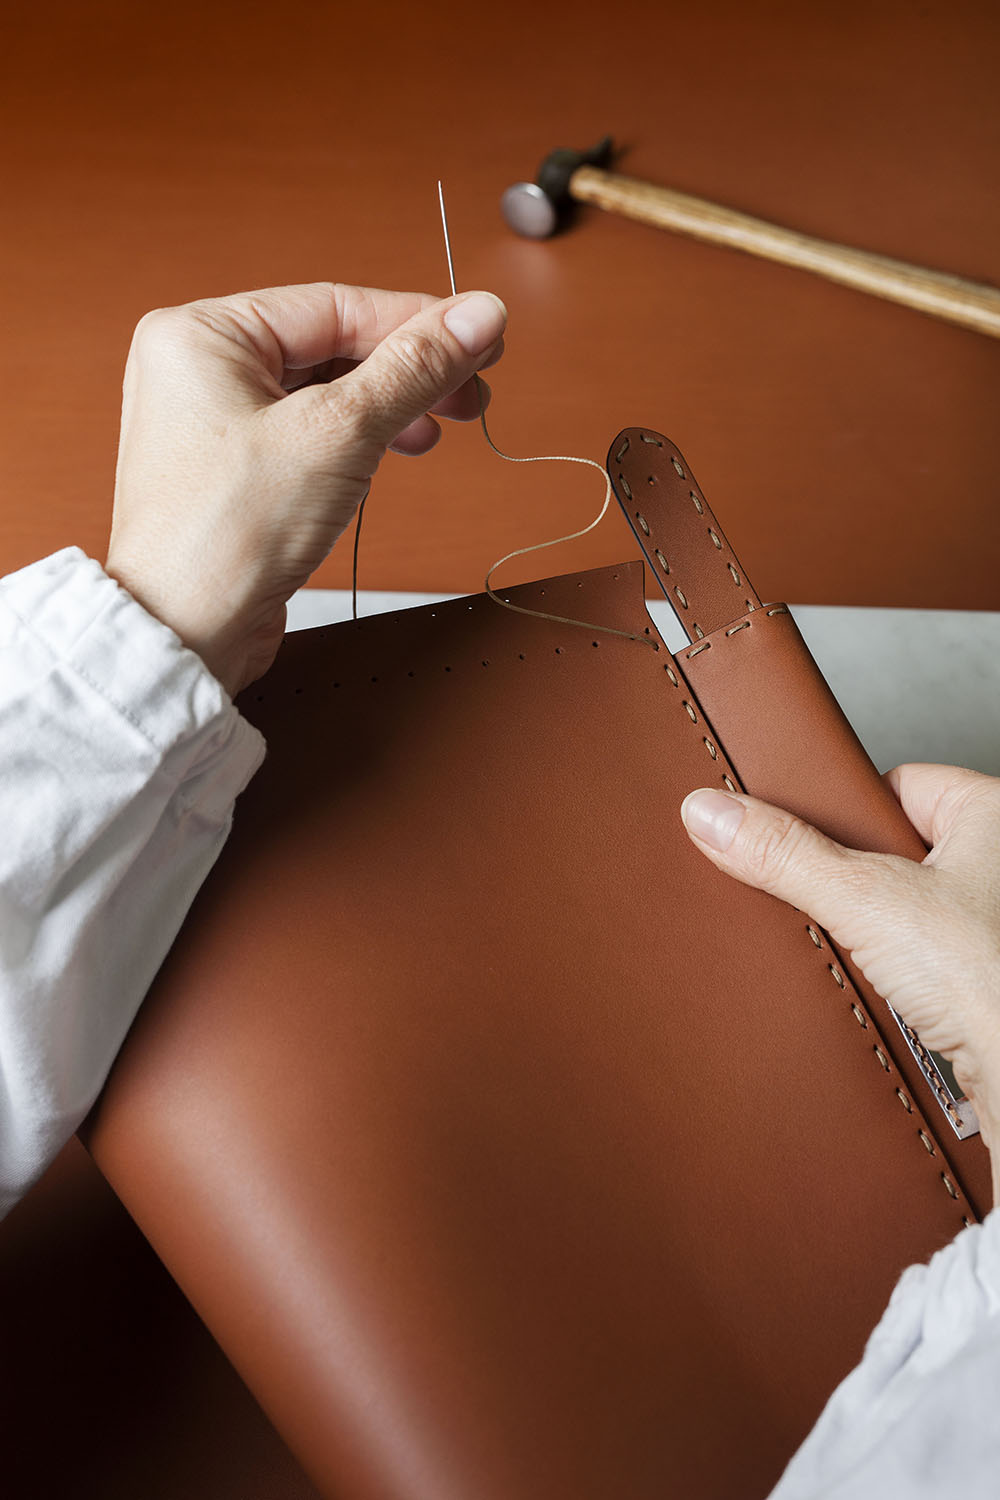 06_Peekaboo_90_Years_making_of_leather_stitching.jpg